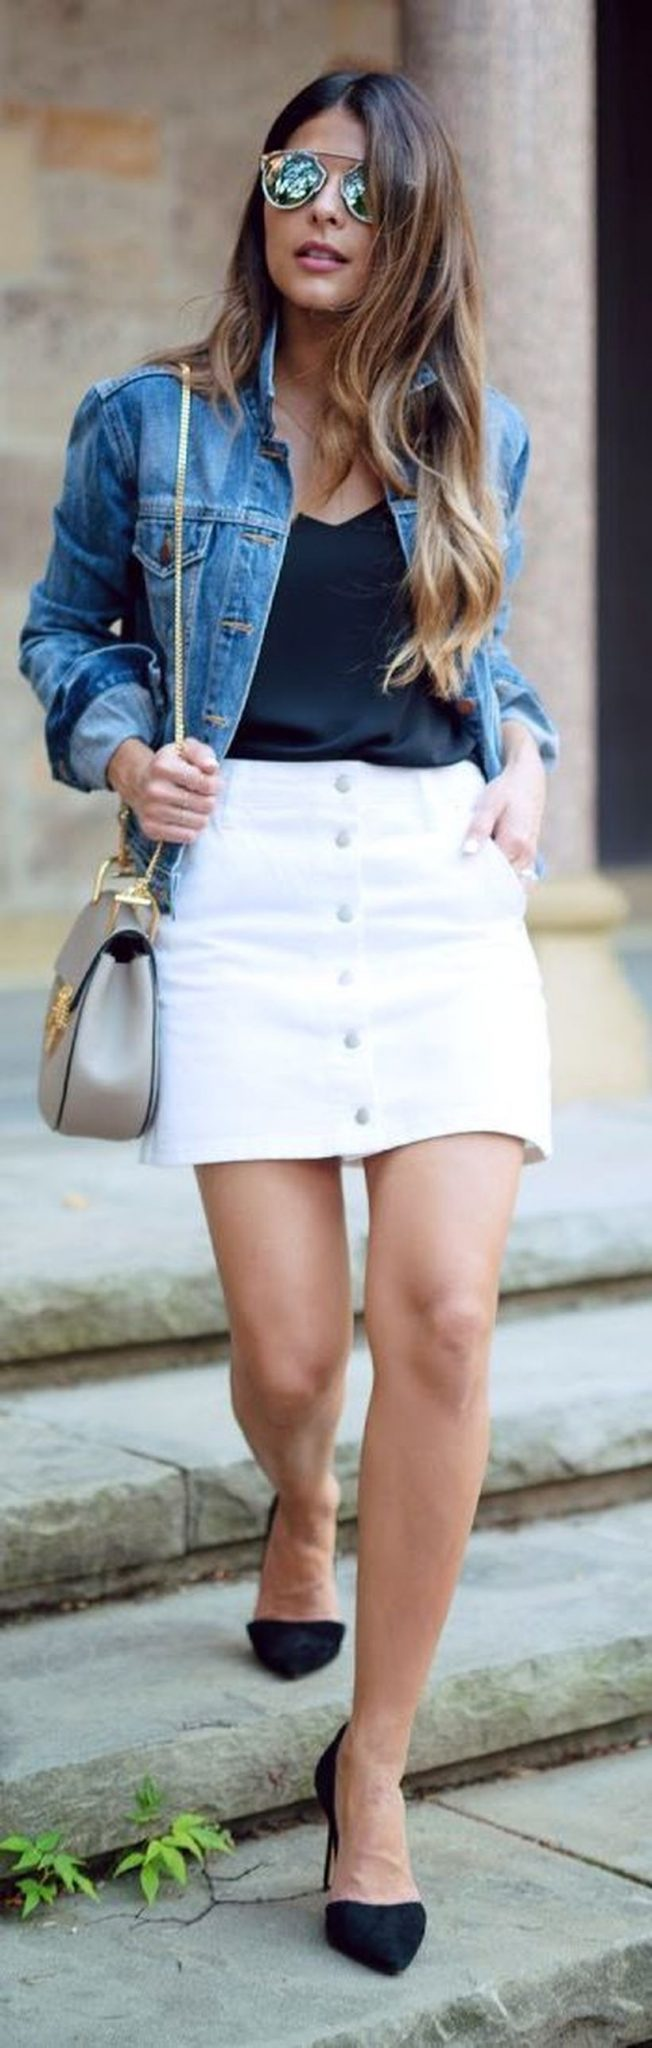 Fashionable white denim skirt outfits ideas 19